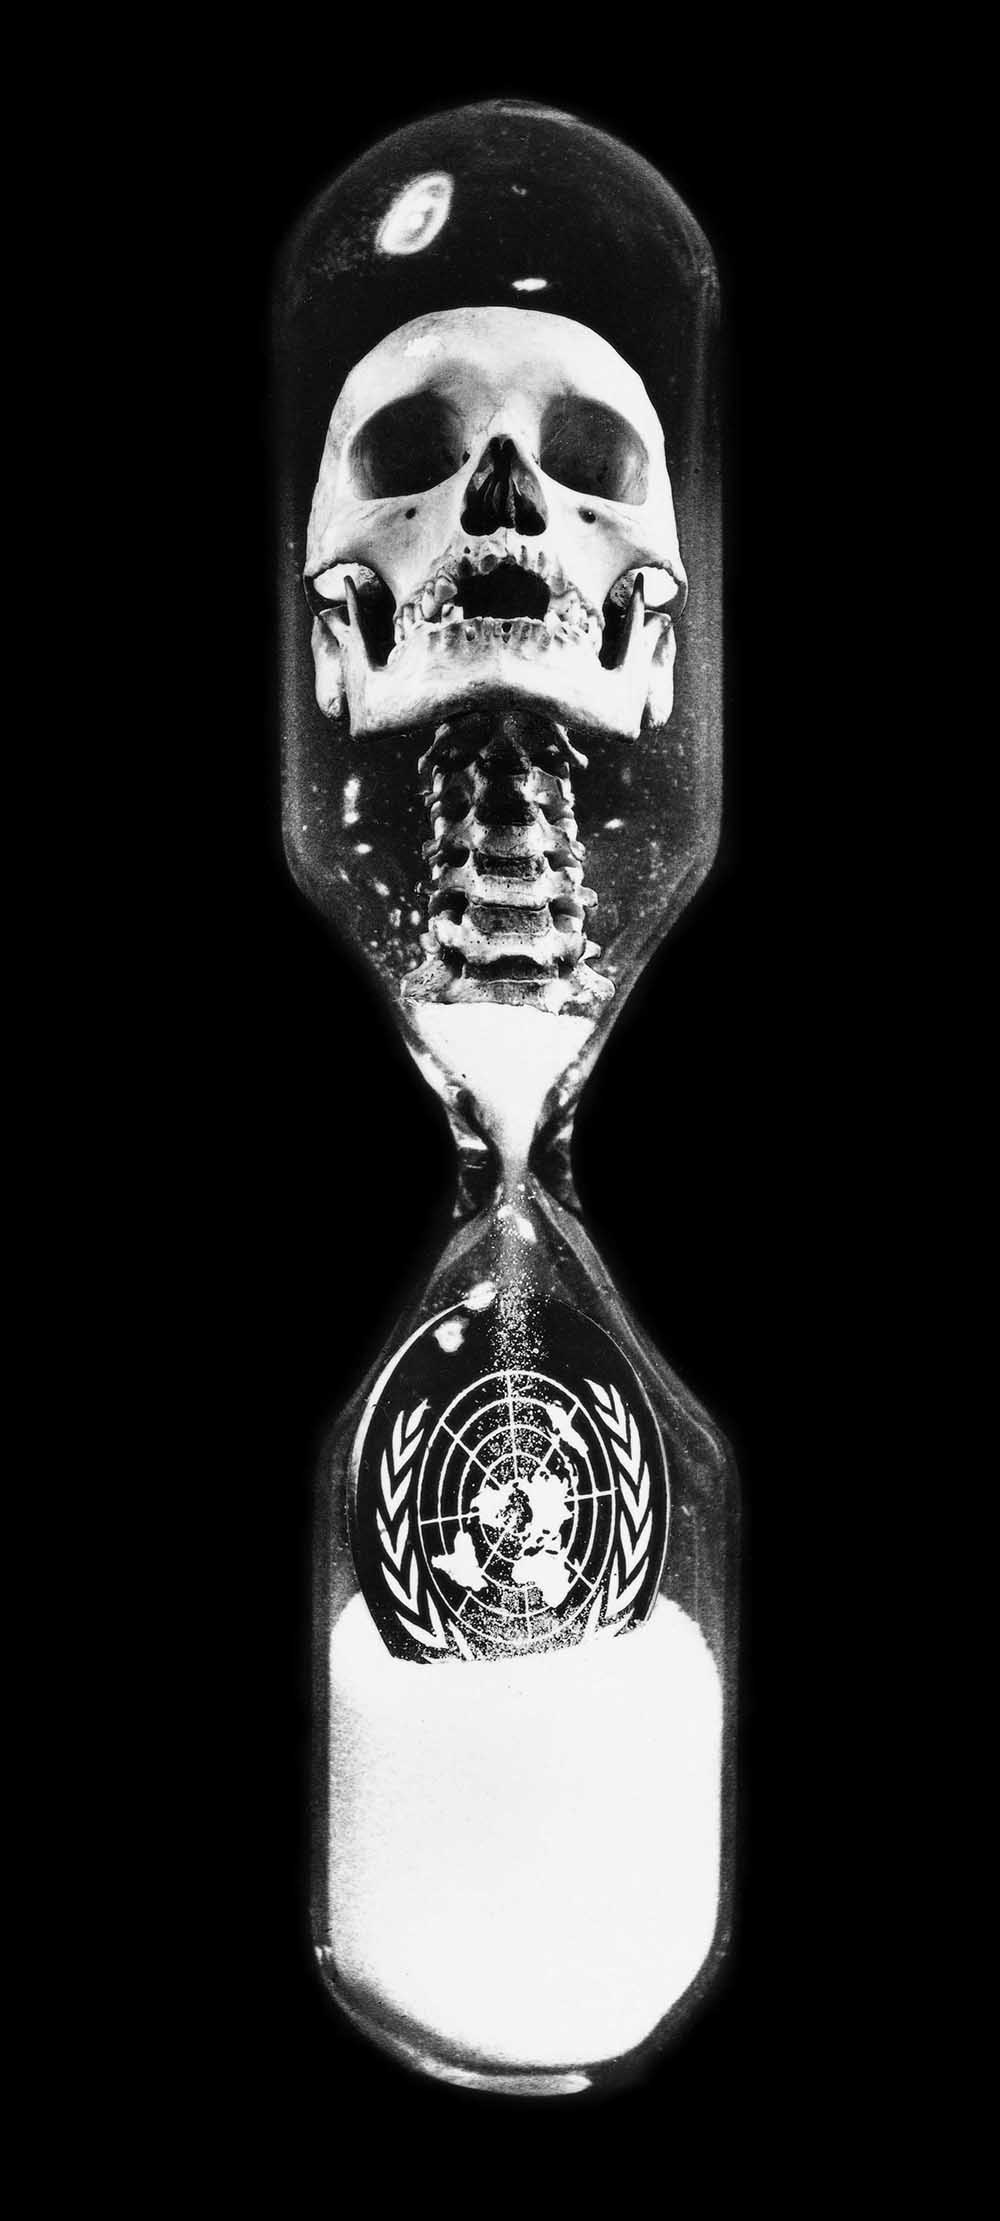 Hourglass - PhotomontageGelatin silver printsand ink on card1991First published:The Guardian, 14th Jan 1991Catalogue: PK/23